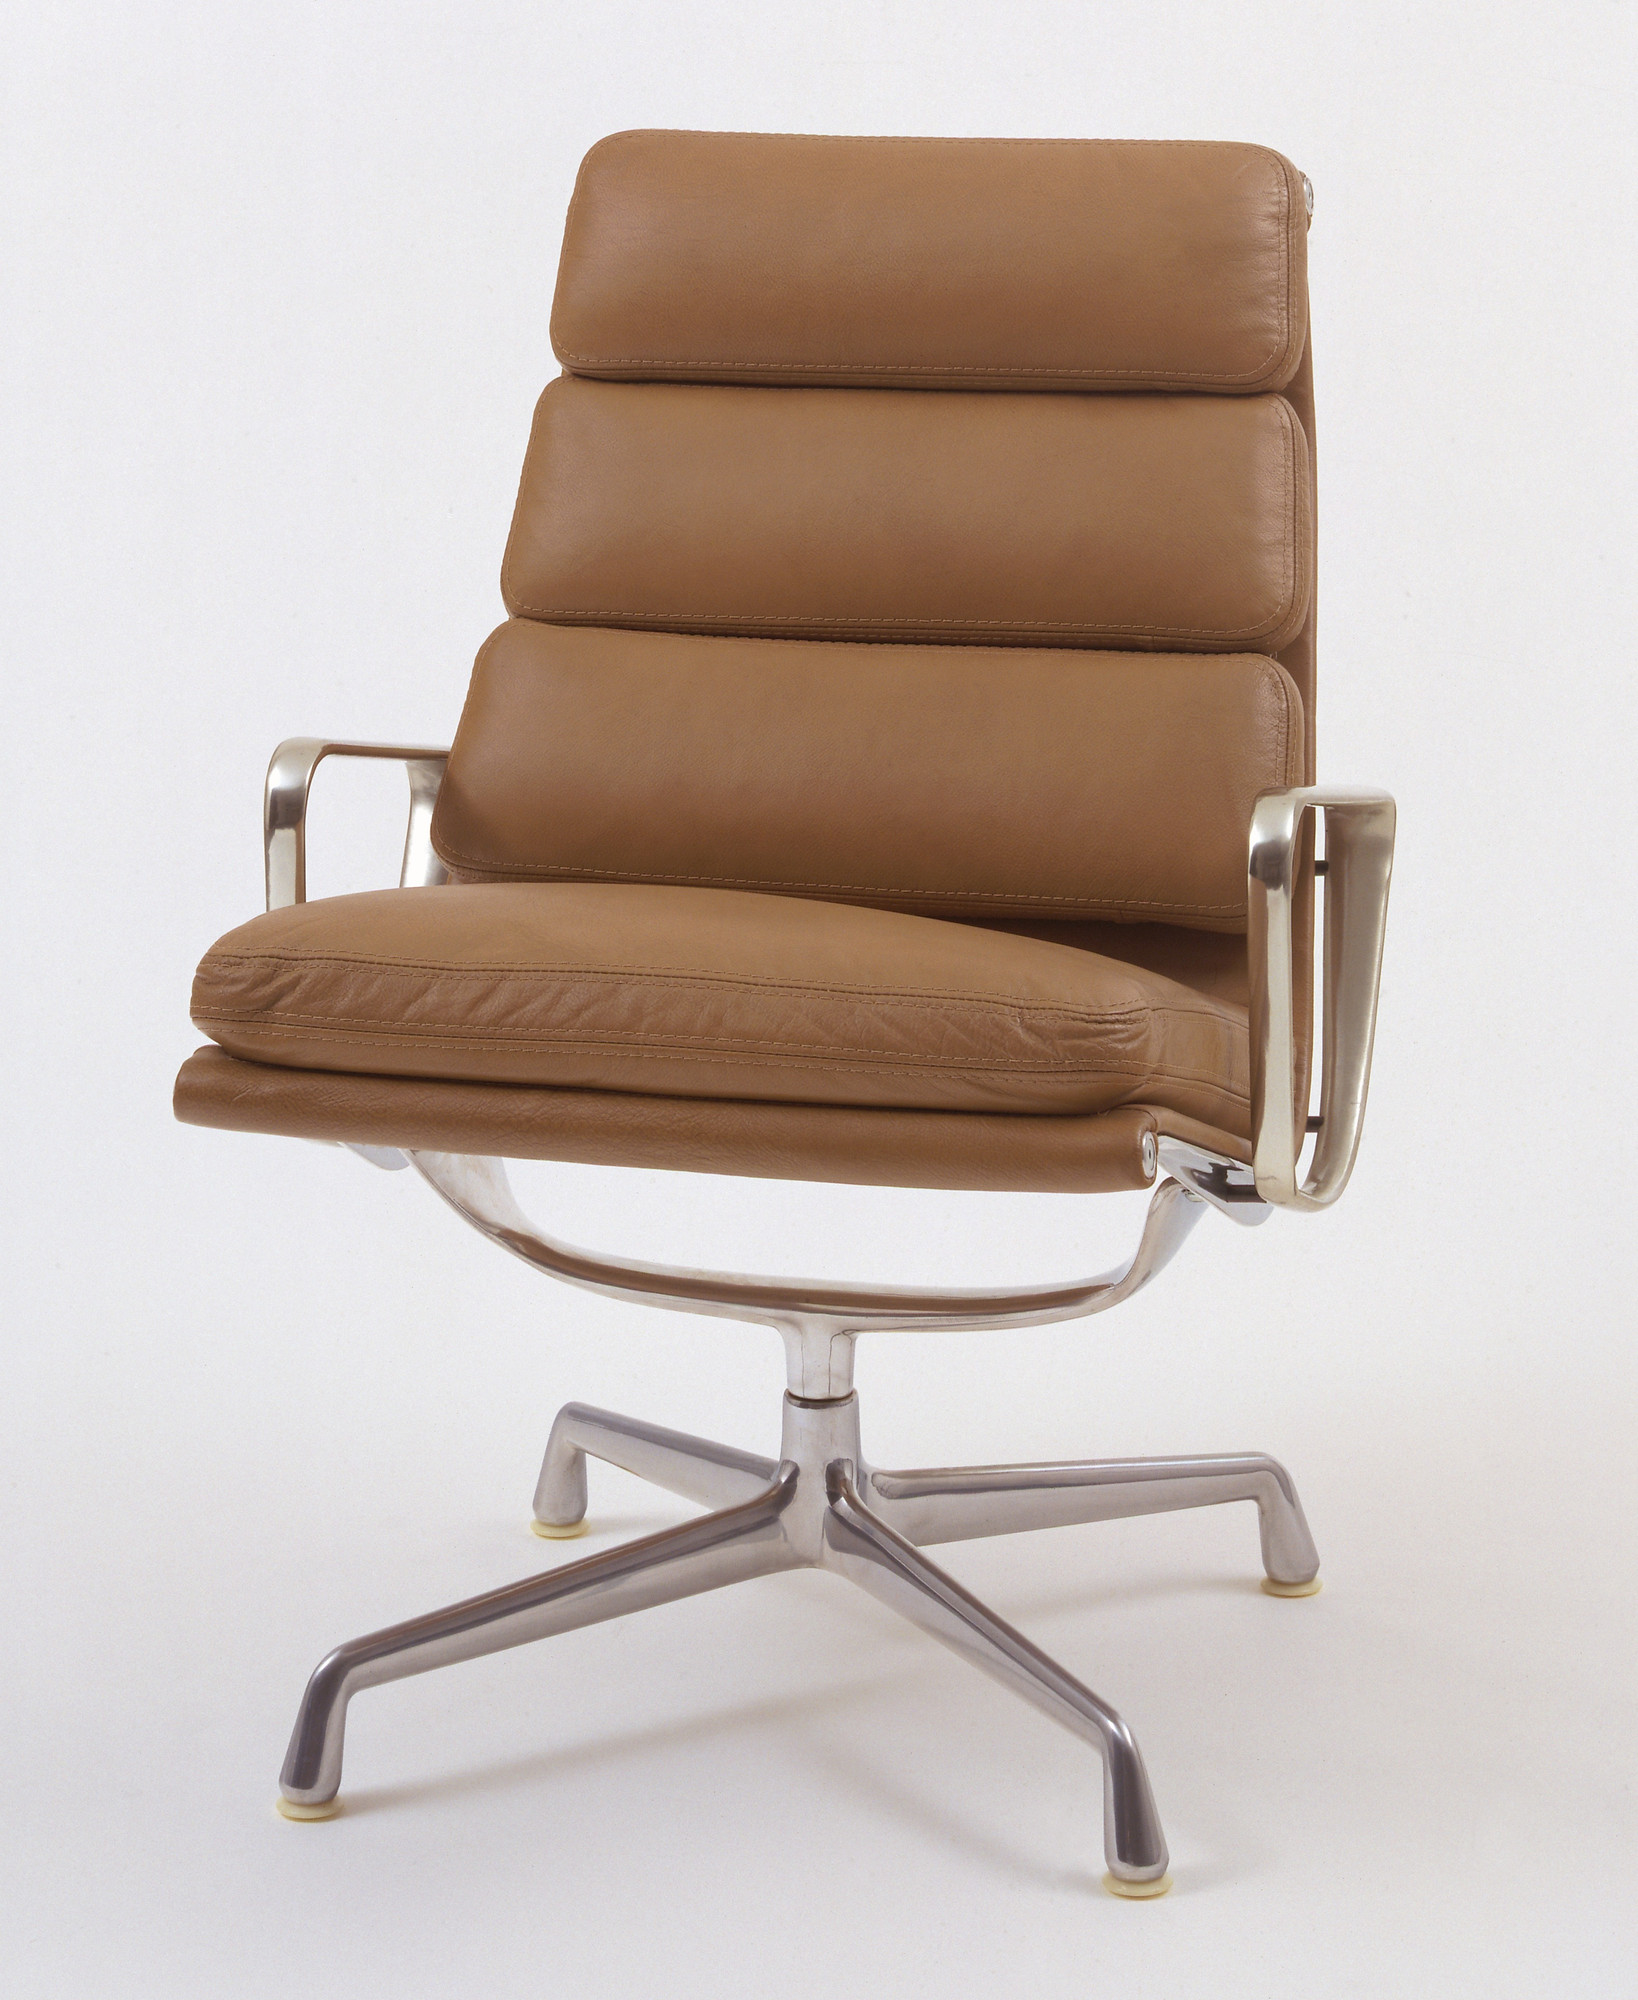 Awesome Charles Eames Ray Eames Lounge Chair 1969 Moma Cjindustries Chair Design For Home Cjindustriesco